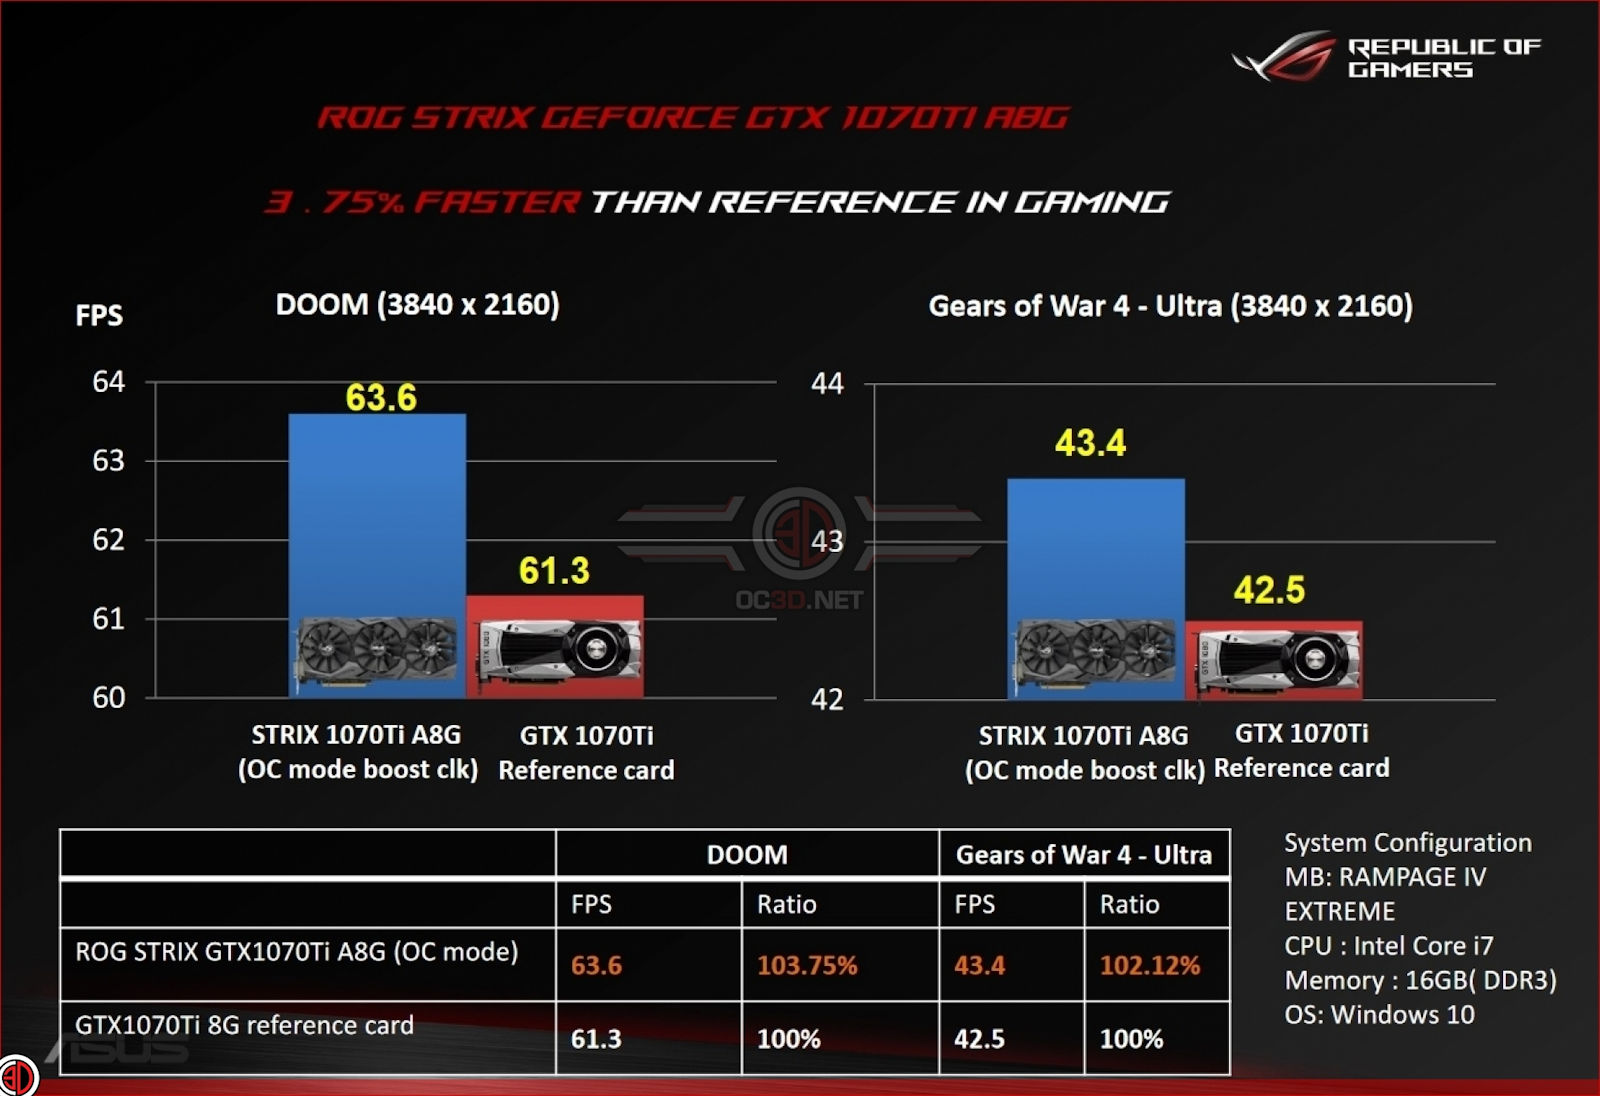 ASUS releases first official benchmark results of GeForce GTX 1070